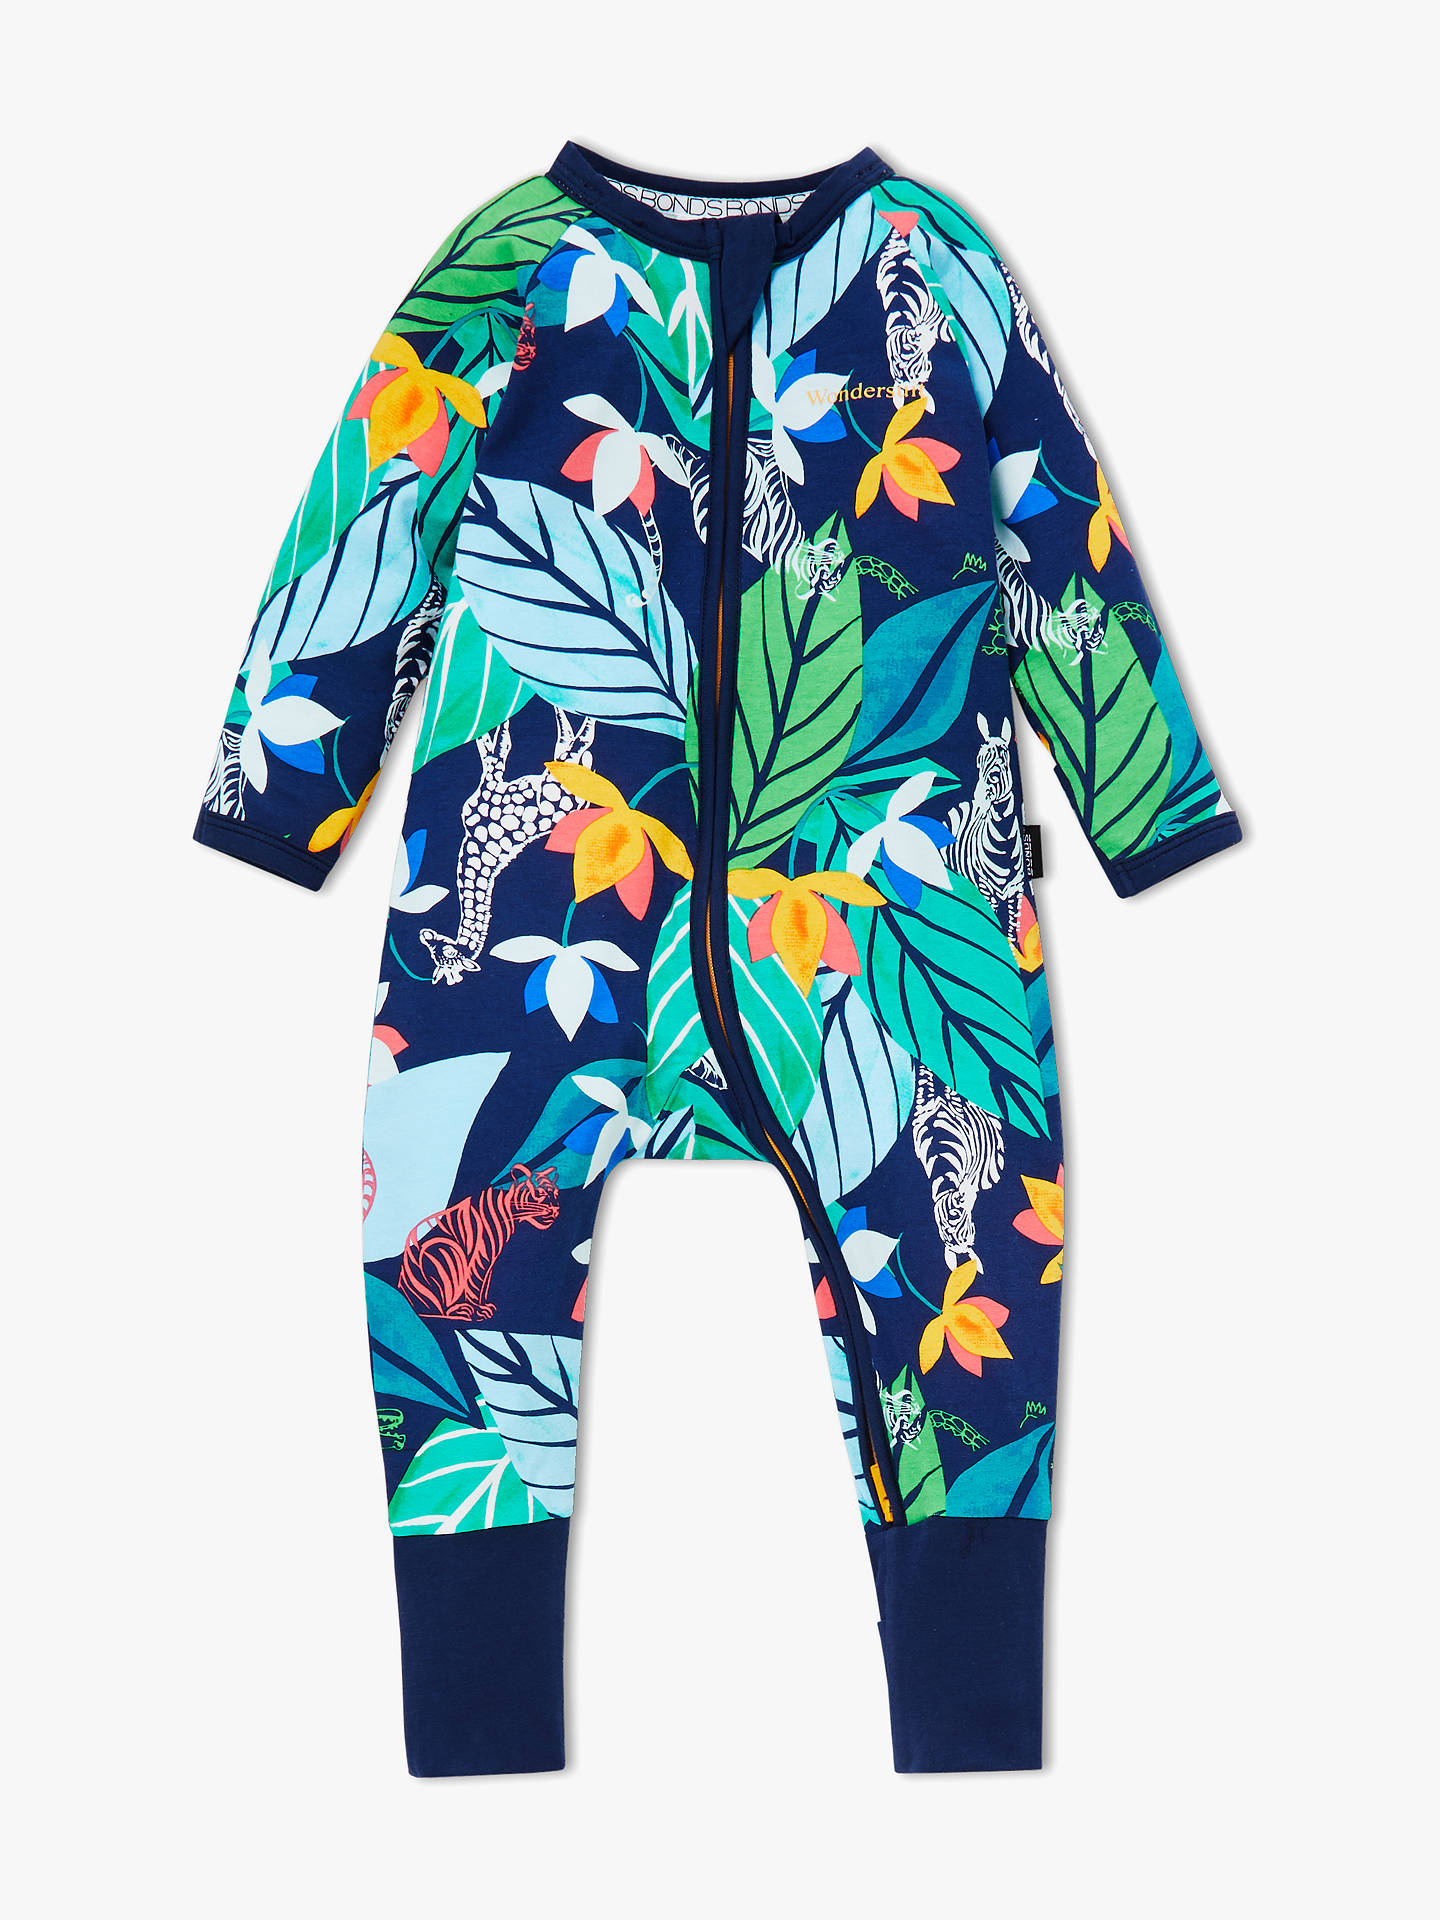 Buy Bonds Baby Zippy Jungle Print Wondersuit, Multi, Newborn Online at johnlewis.com